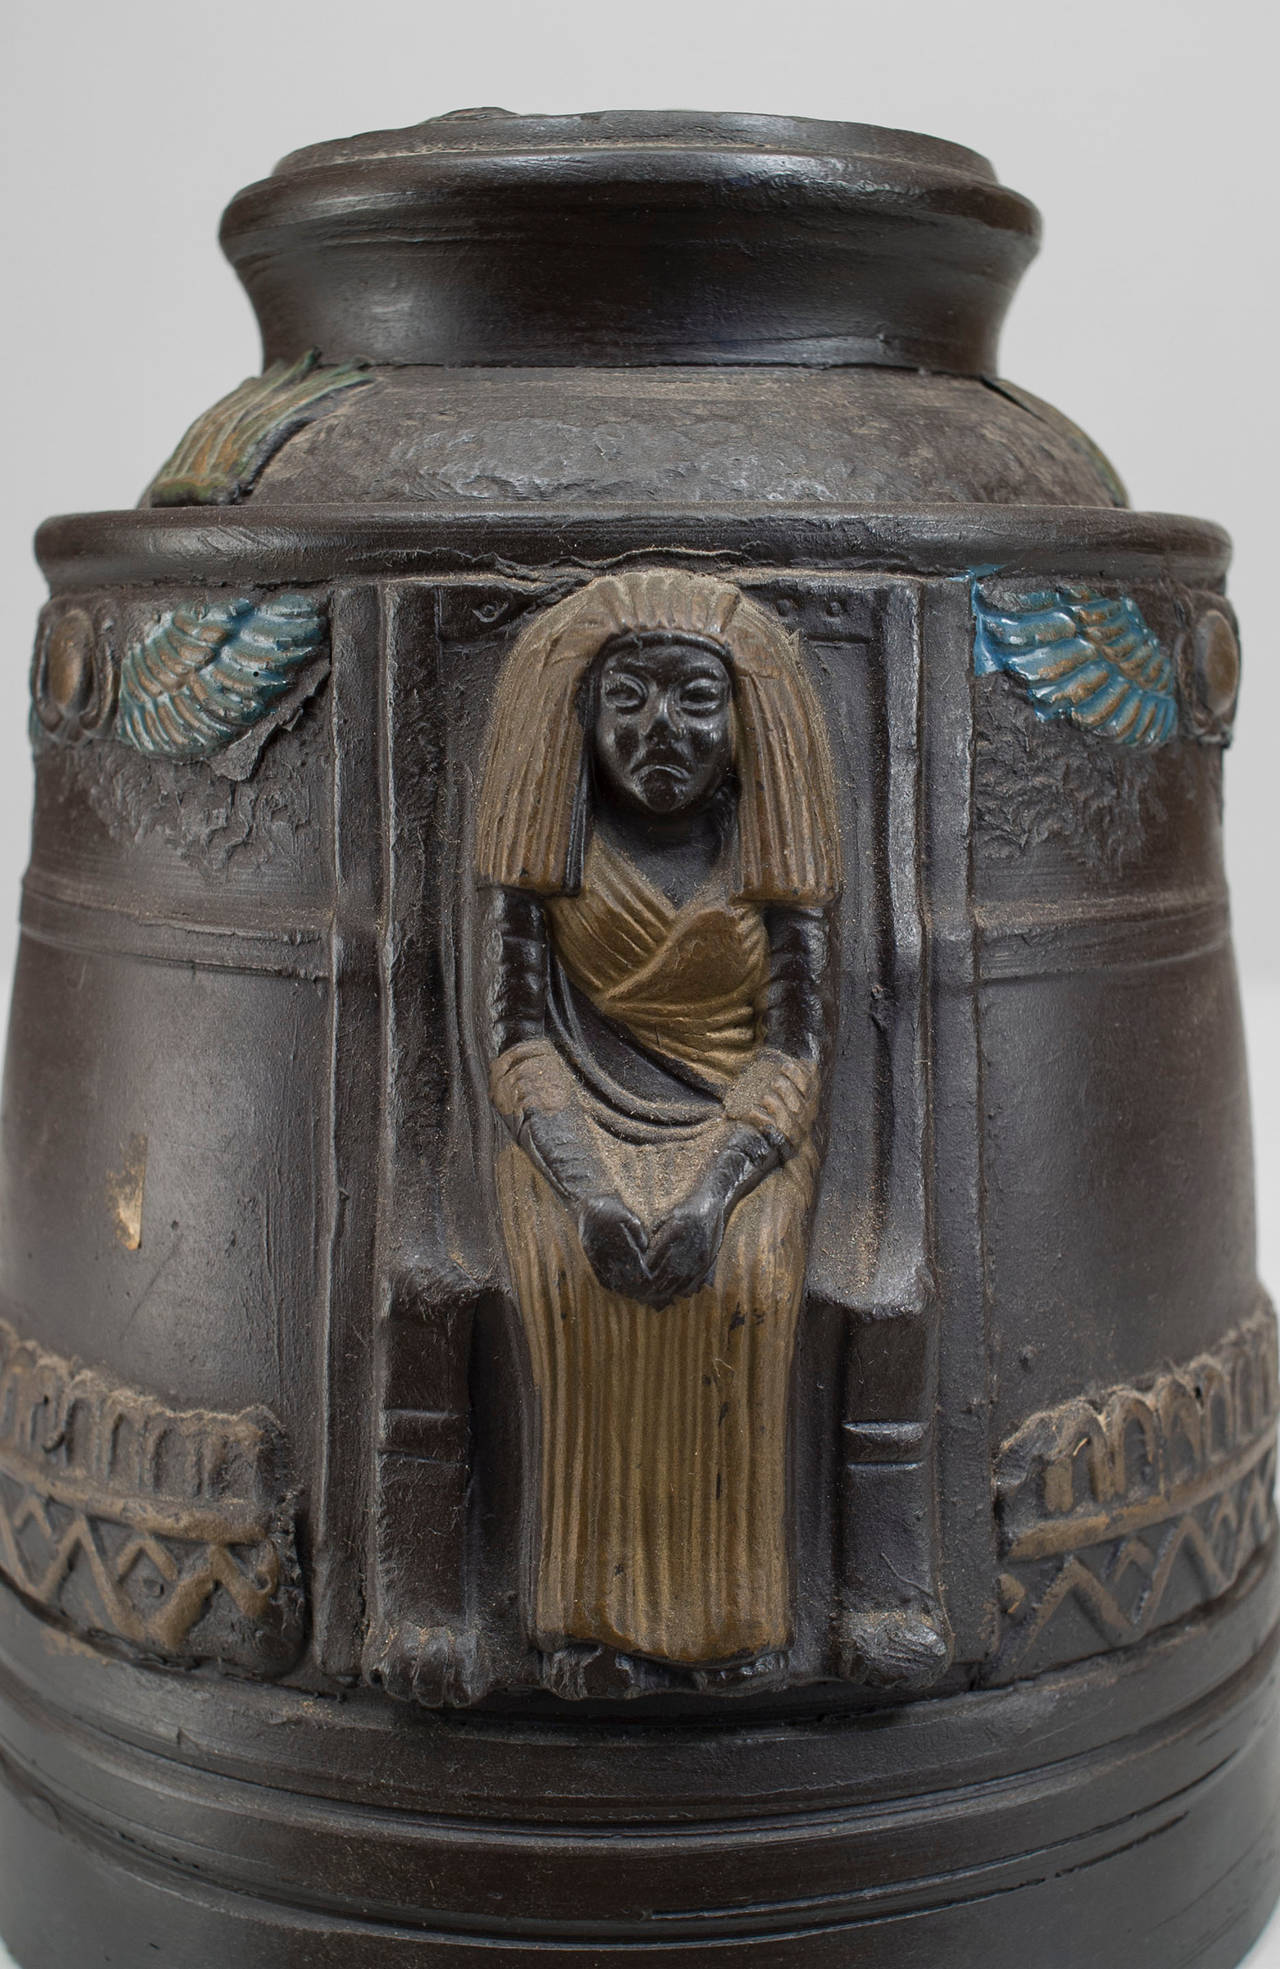 1920s Japanese Egyptian Revival Tobacco Jar For Sale 2